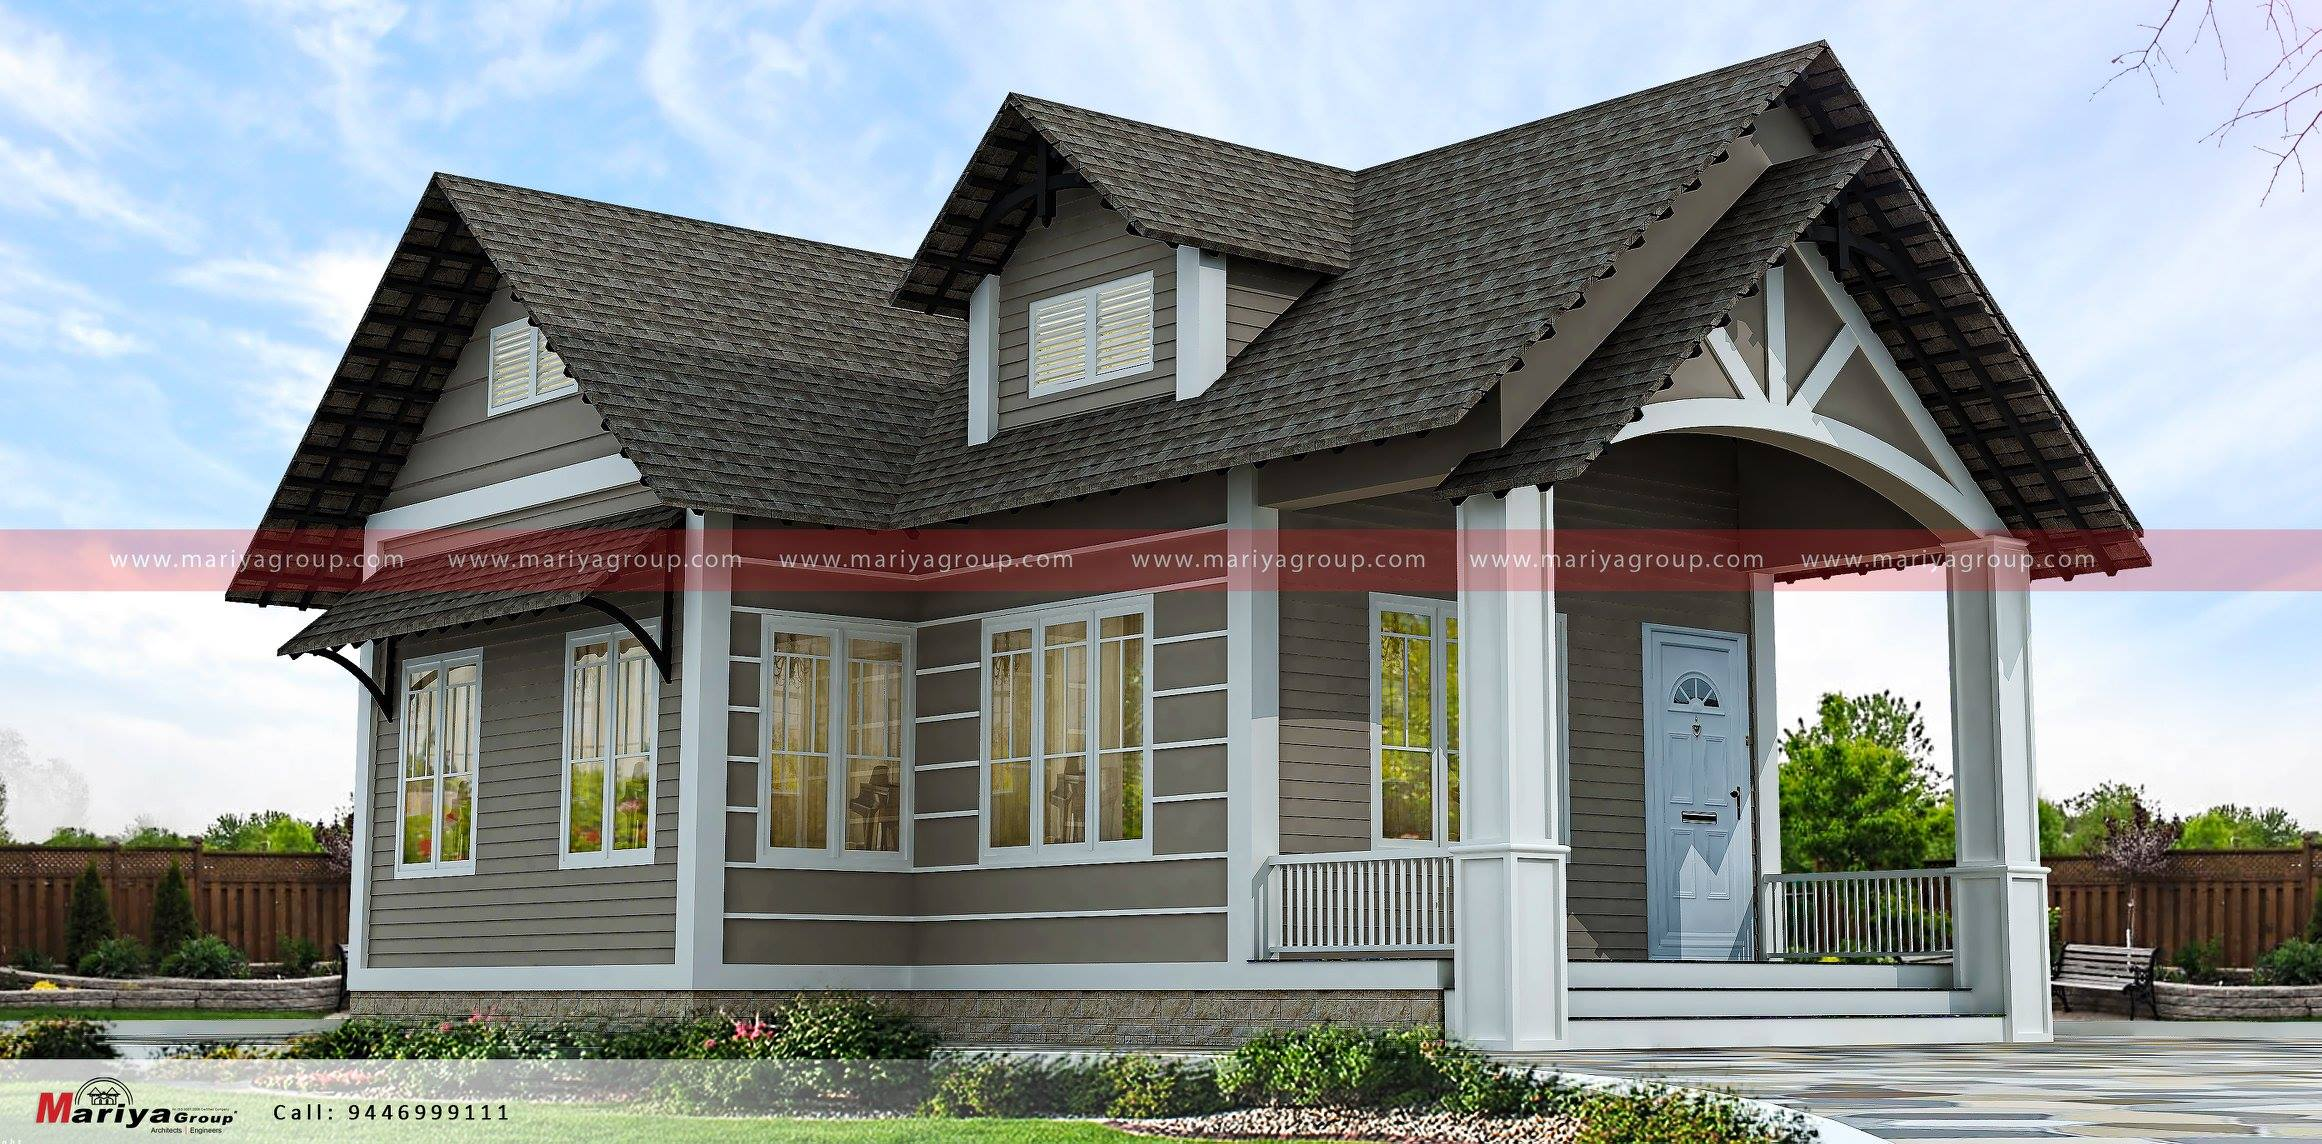 Best architecture companies in india architecture for Company that builds houses